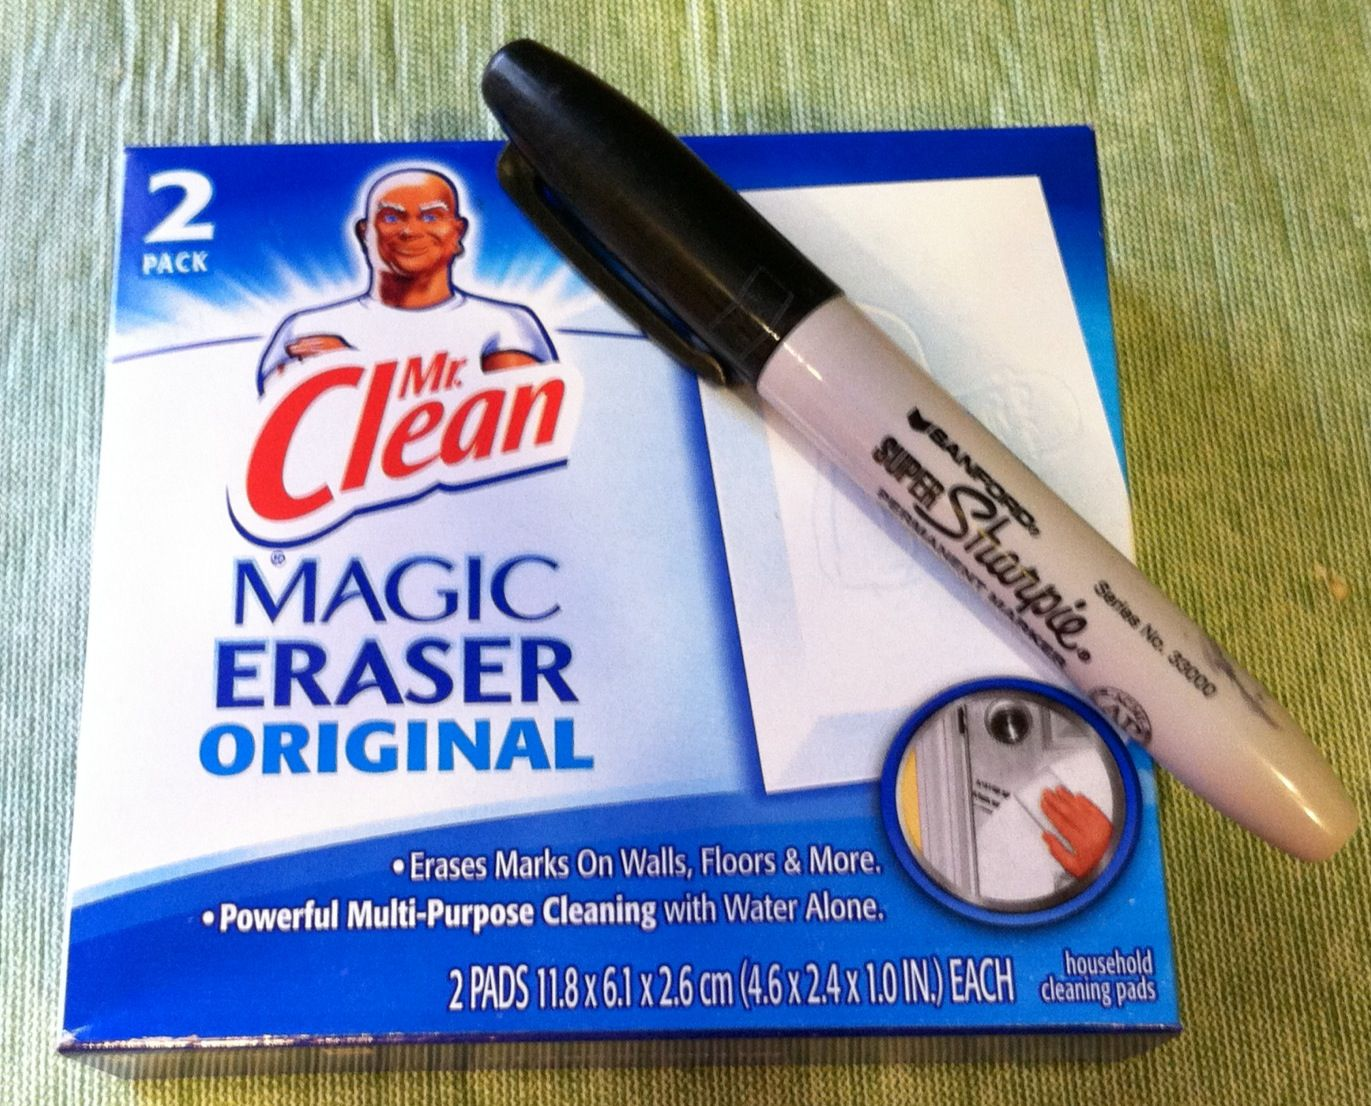 How To Remove Sharpie From Countertop Use Mr Clean Magic Eraser To Remove Permanent Marker From Any